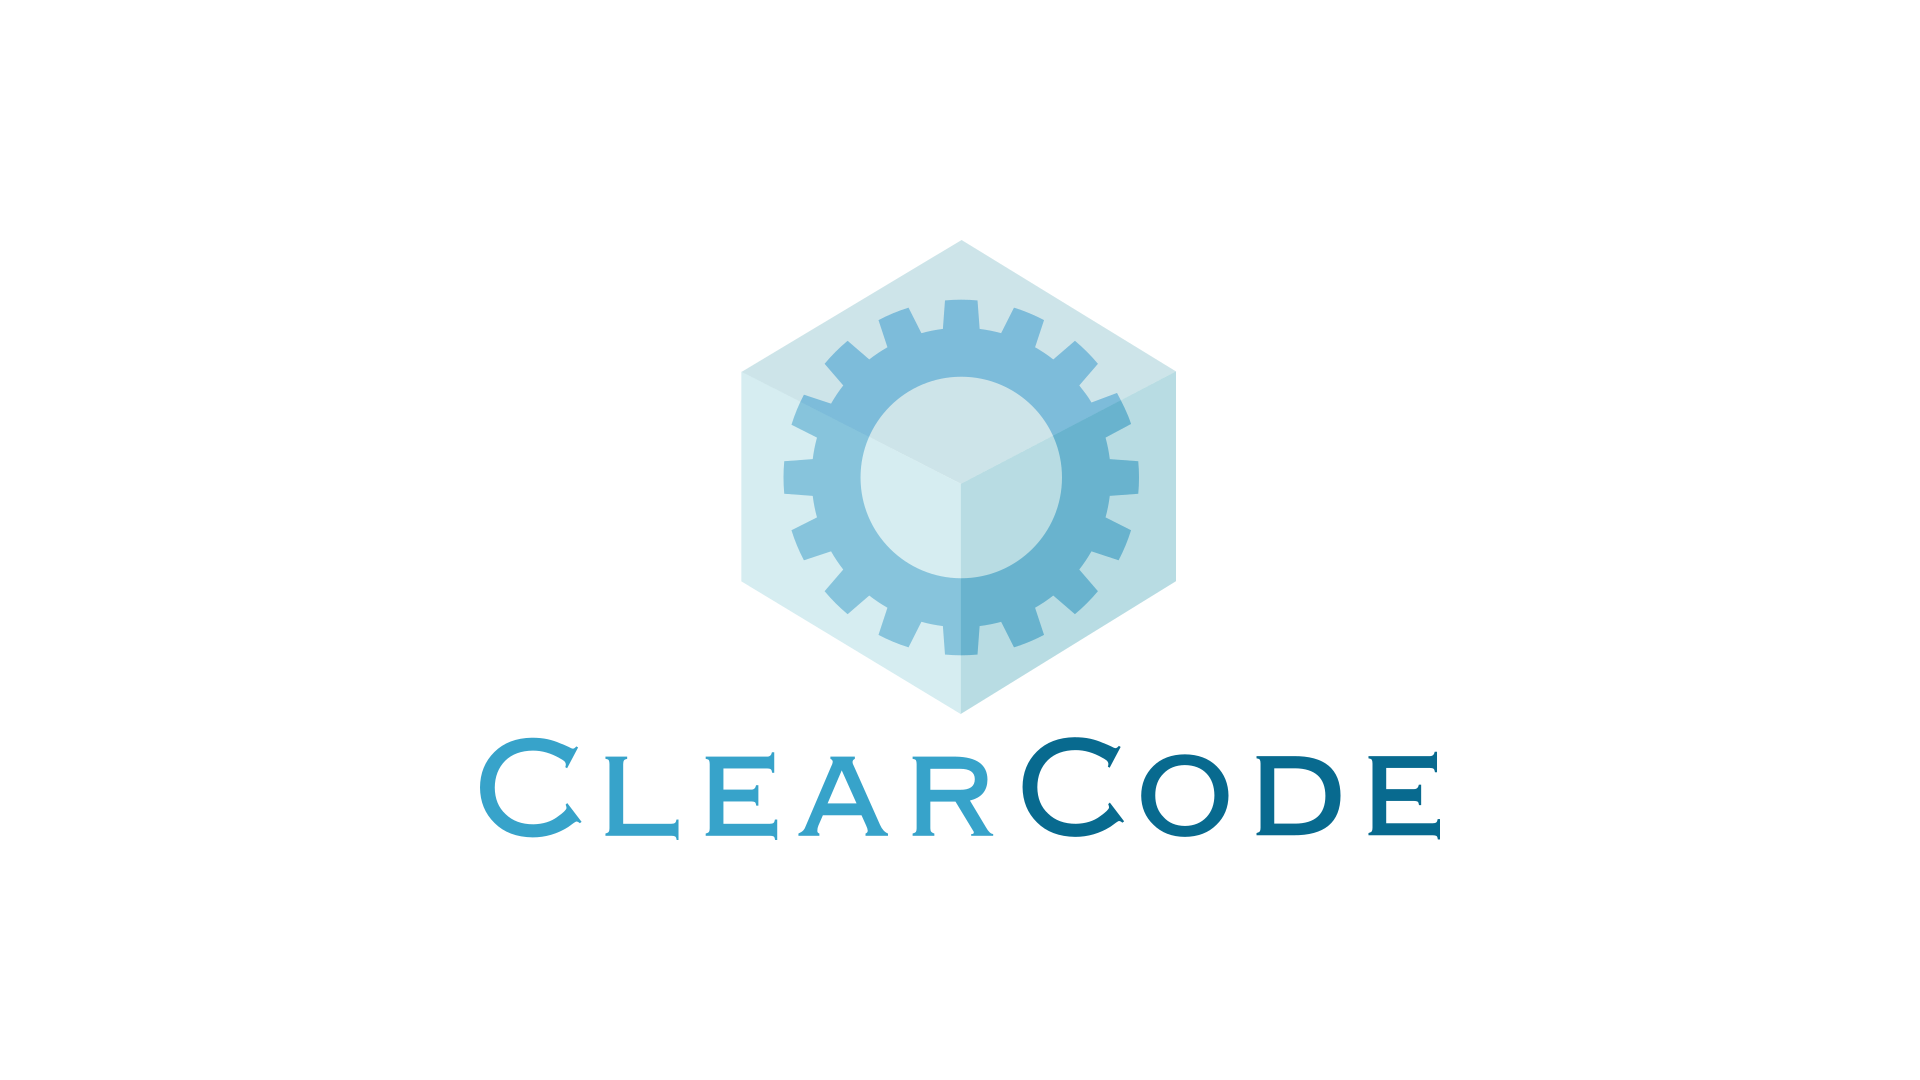 ClearCode Ltd.